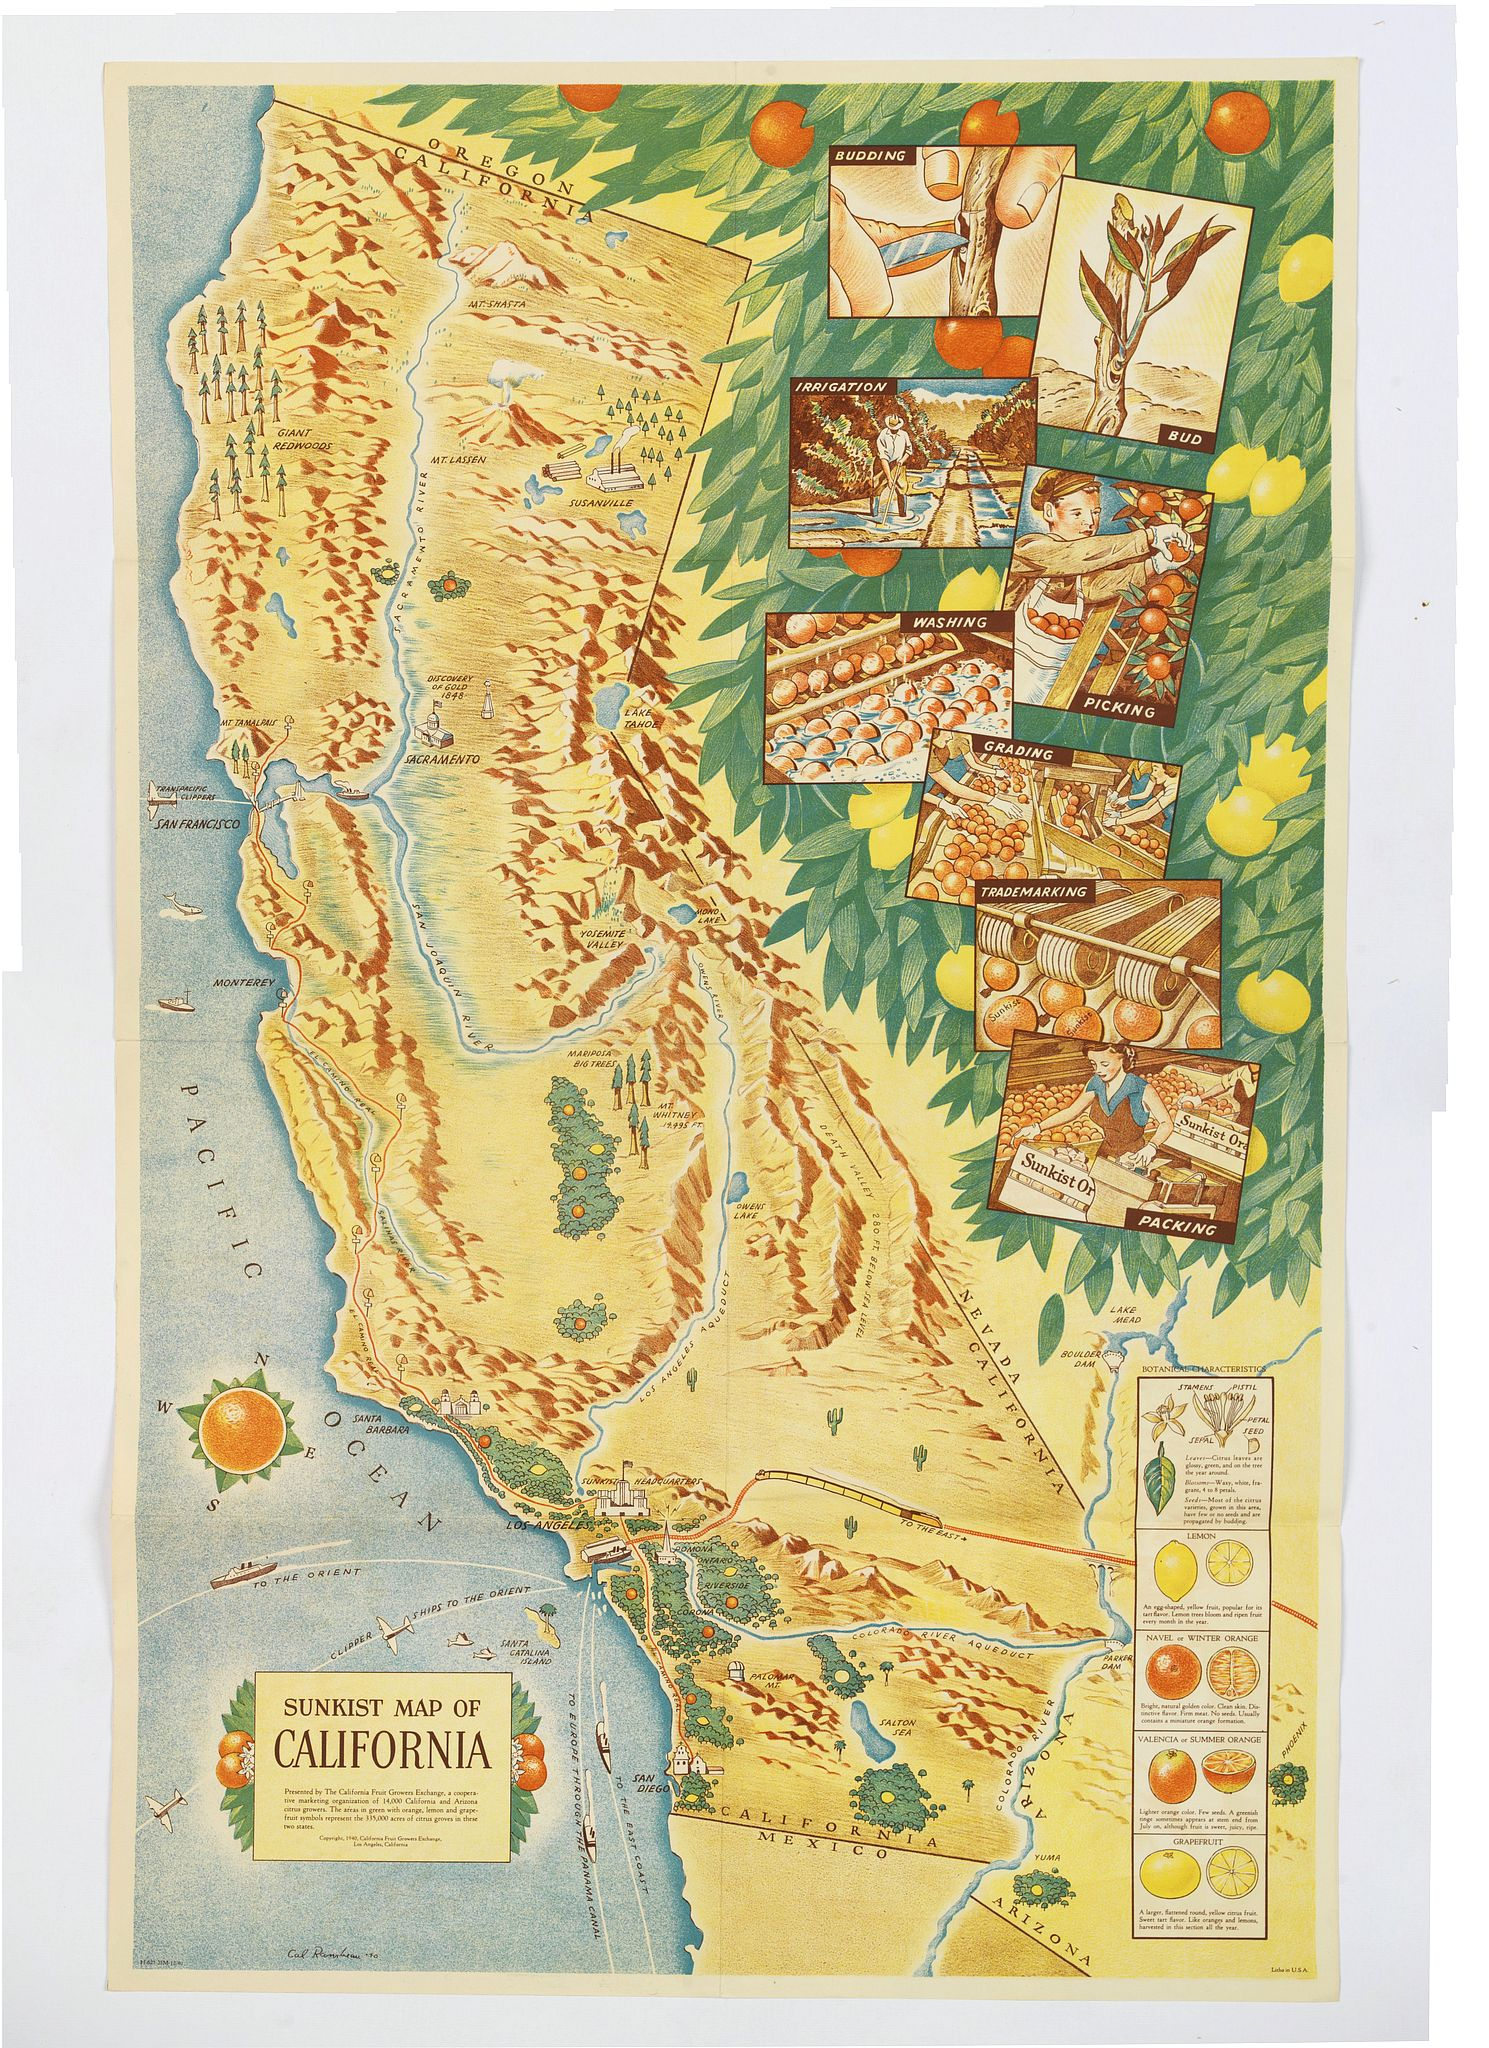 THE CALIFORNIAN FRUIT GROWERS EXCHANGE. -  Sunkist Map of California.